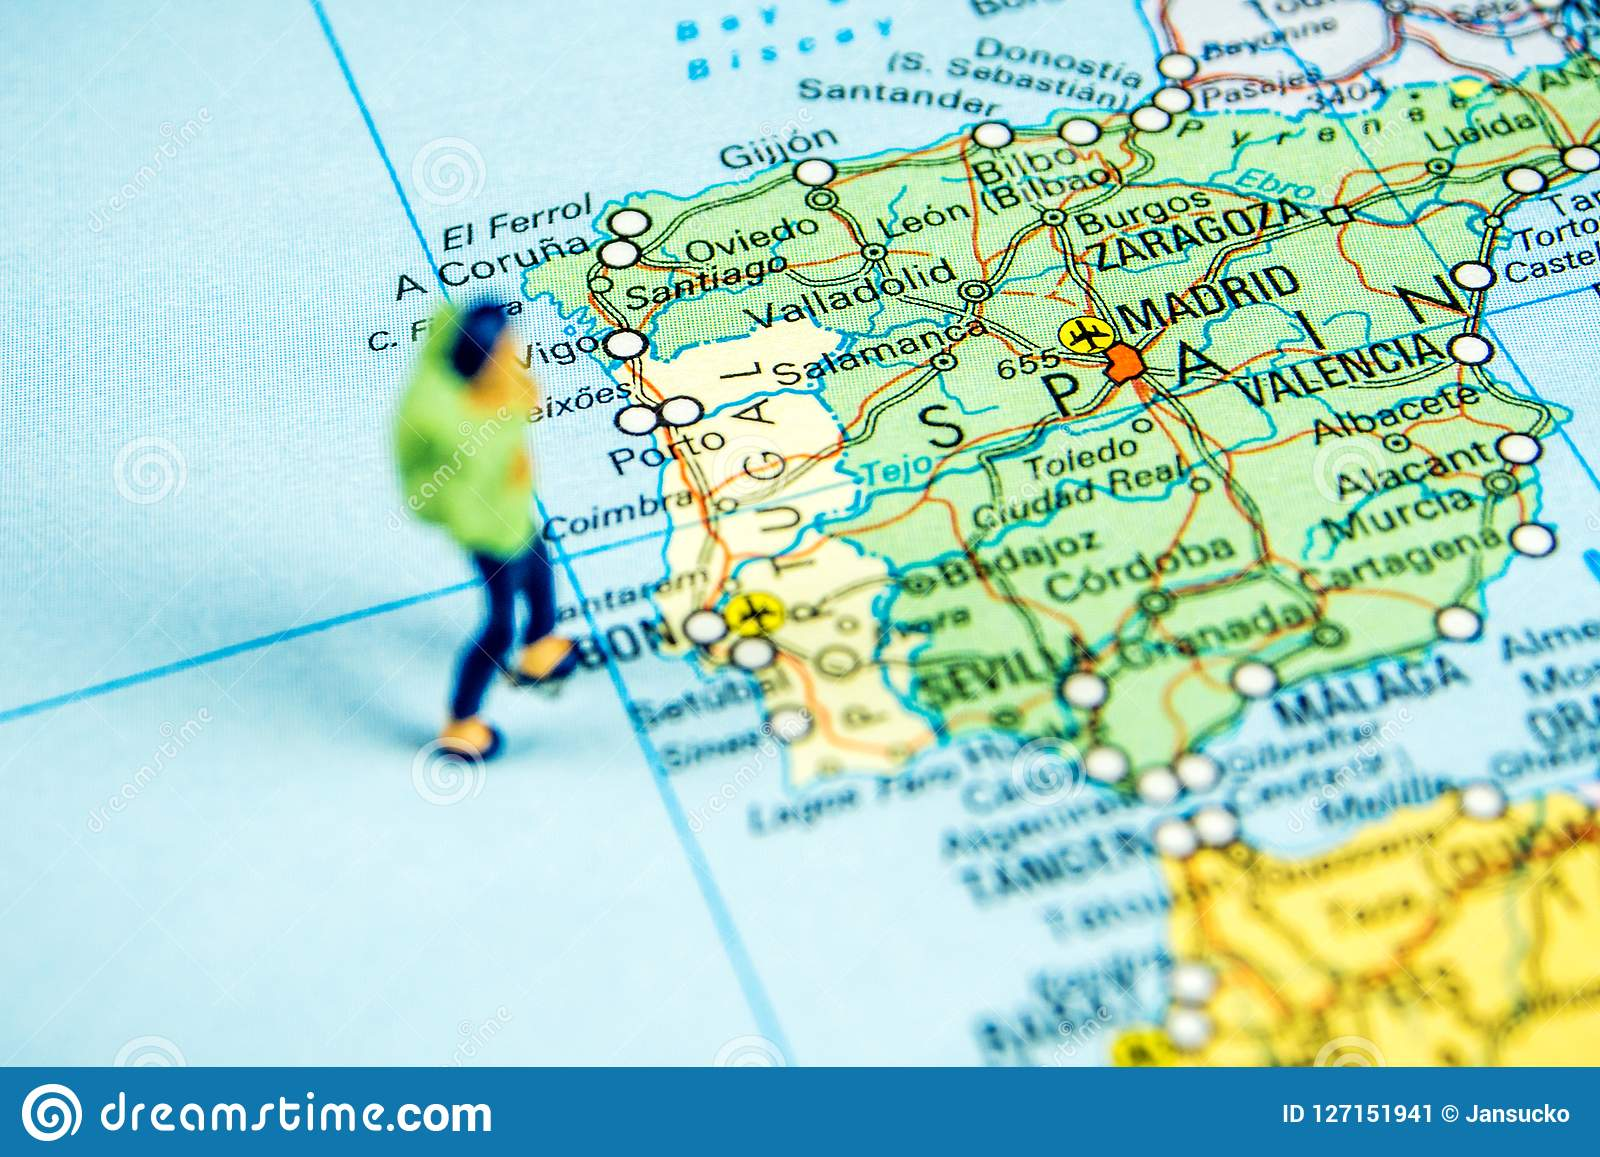 Big Map Of Spain.Travelling To Spain Stock Image Image Of Green Equipment 127151941